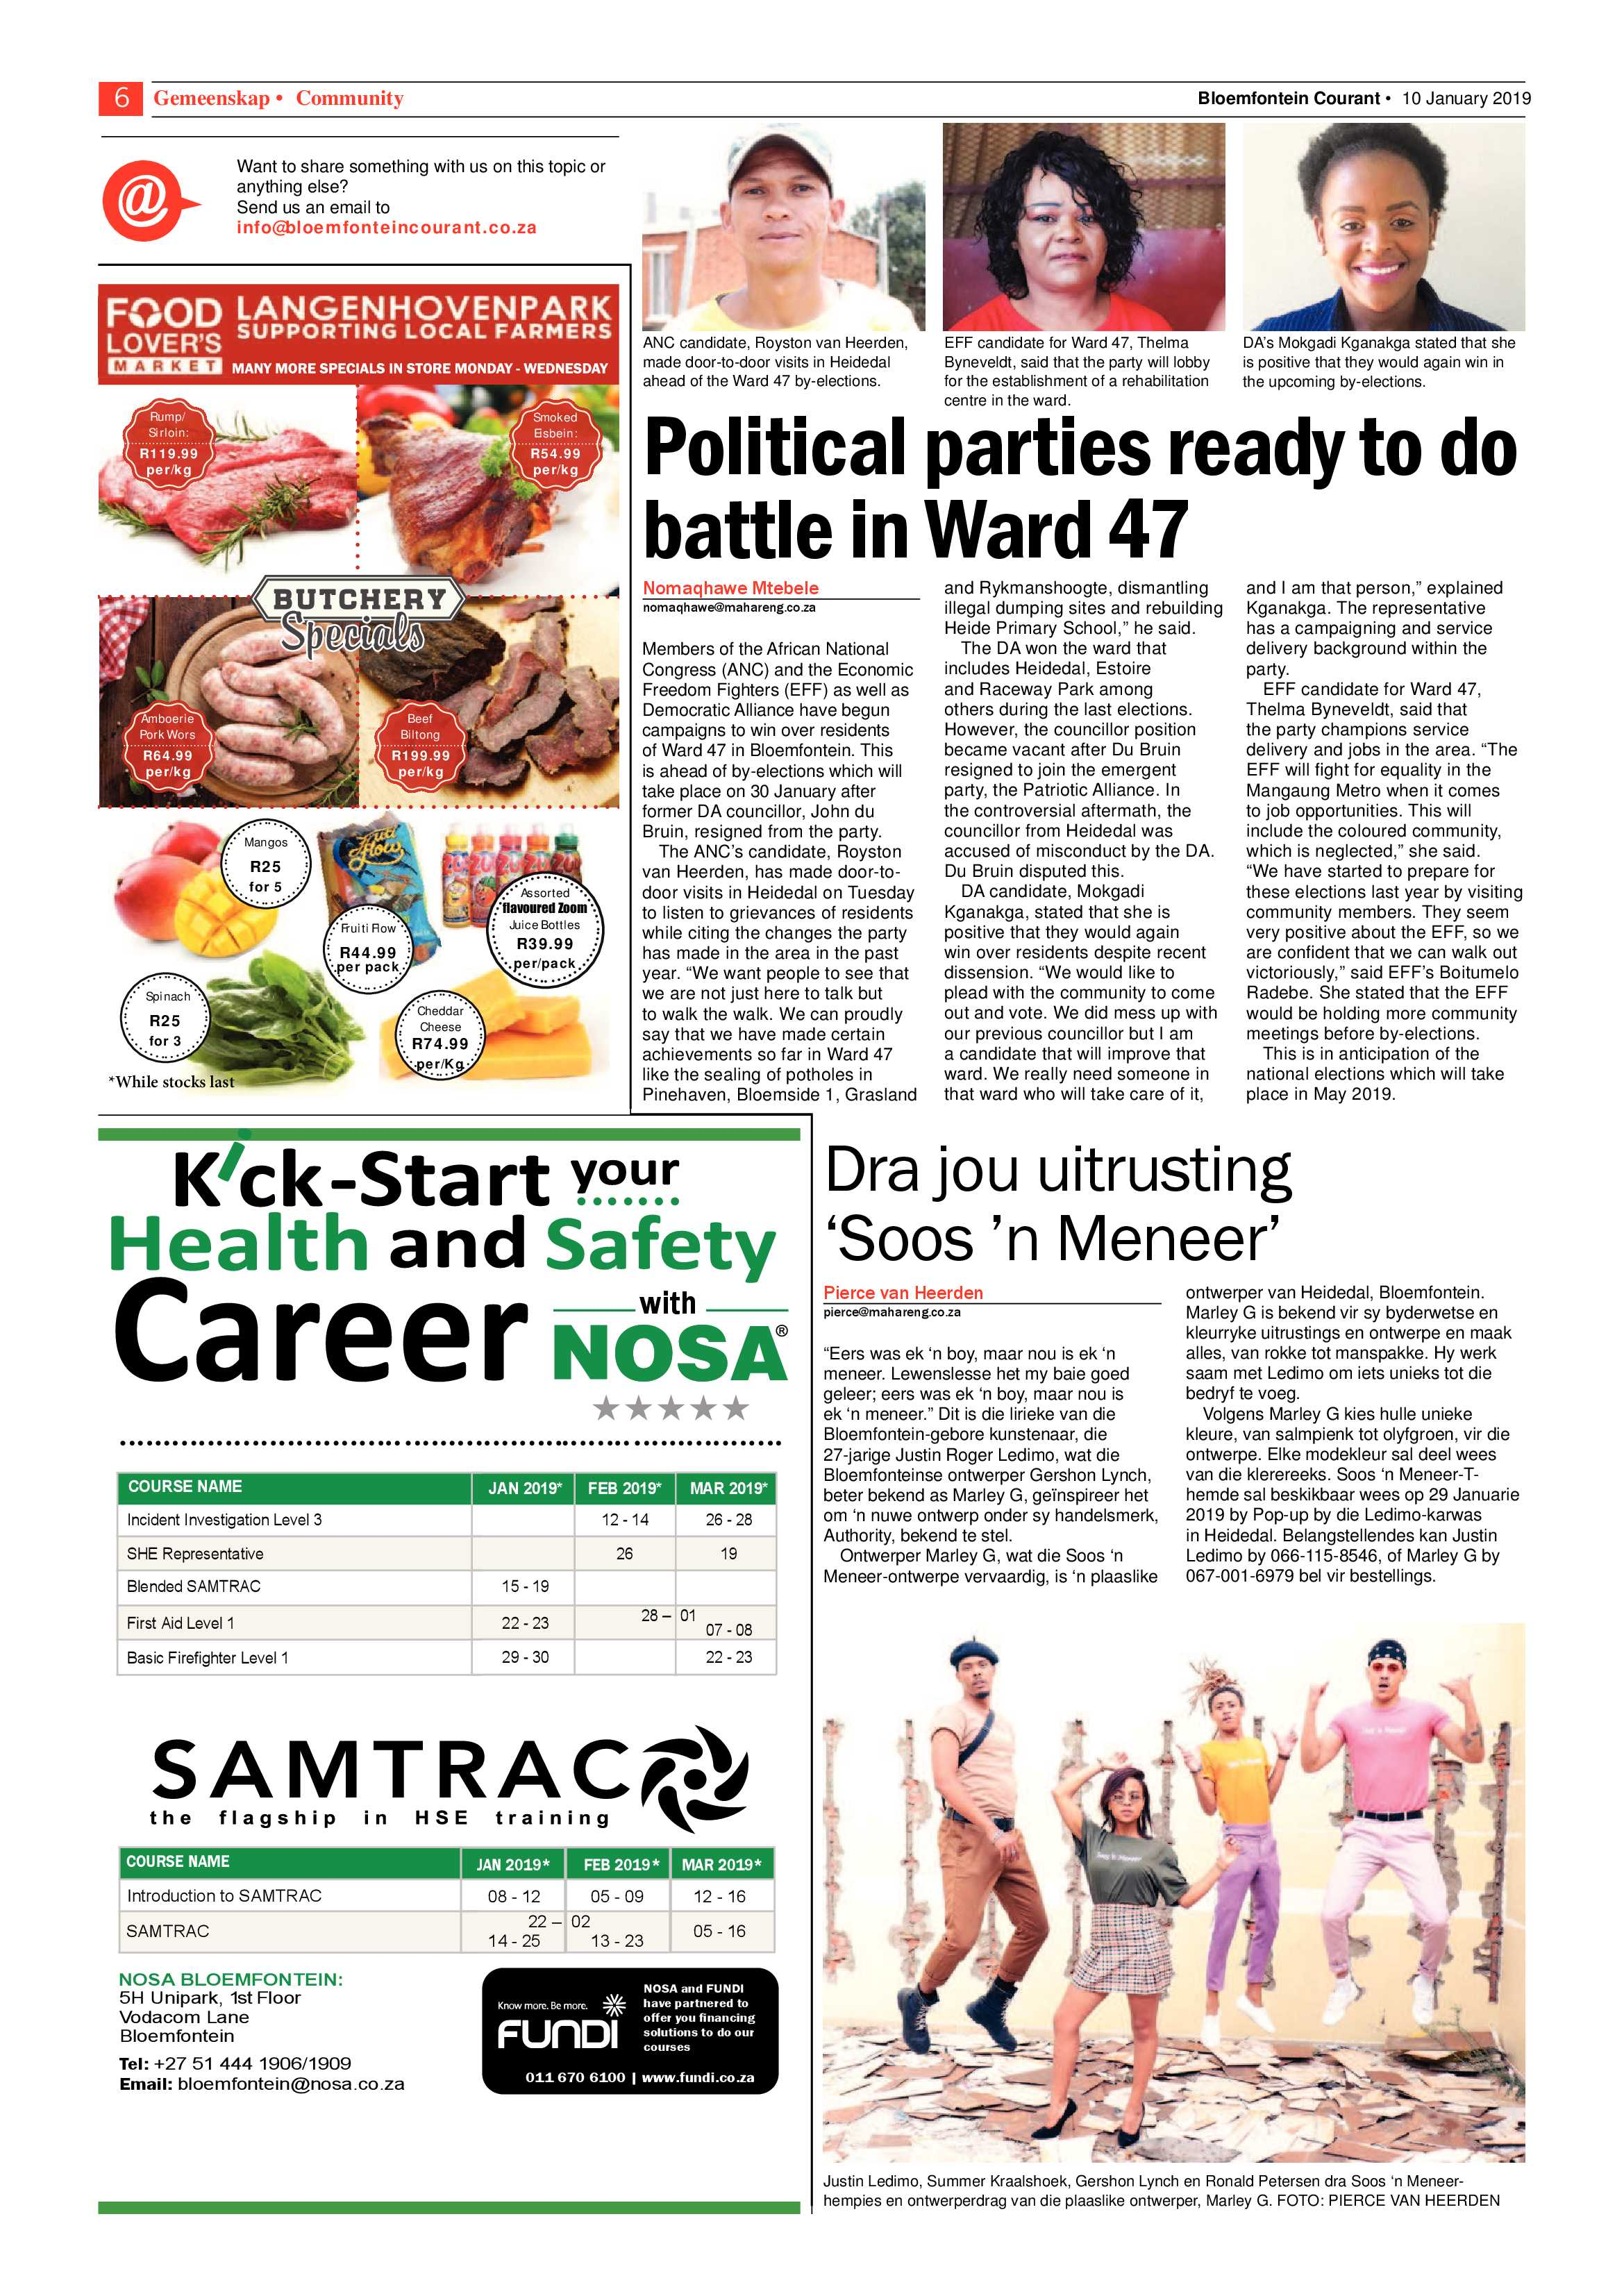 courant-10-january-2019-epapers-page-6